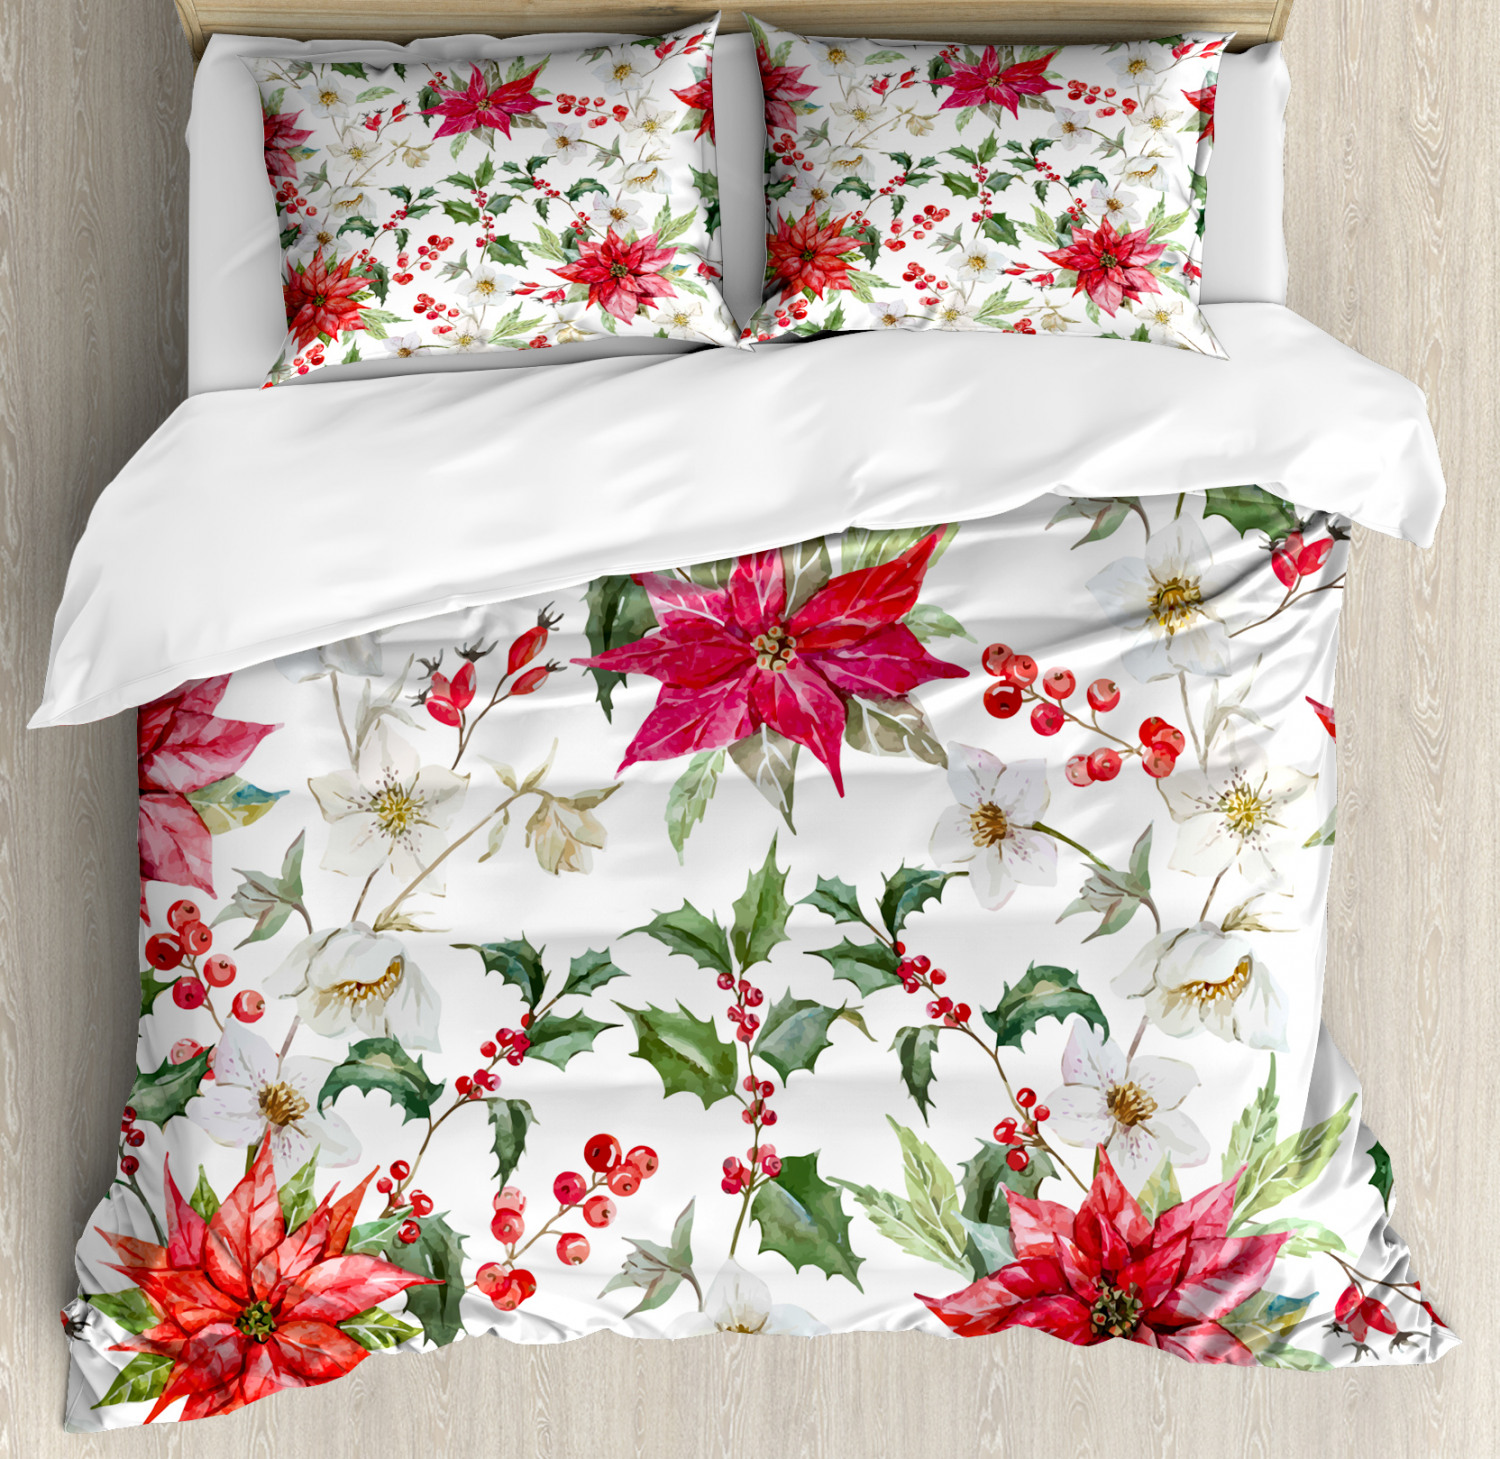 Floral Duvet Cover Set with Pillow Shams Christmas Flowers Buds Print